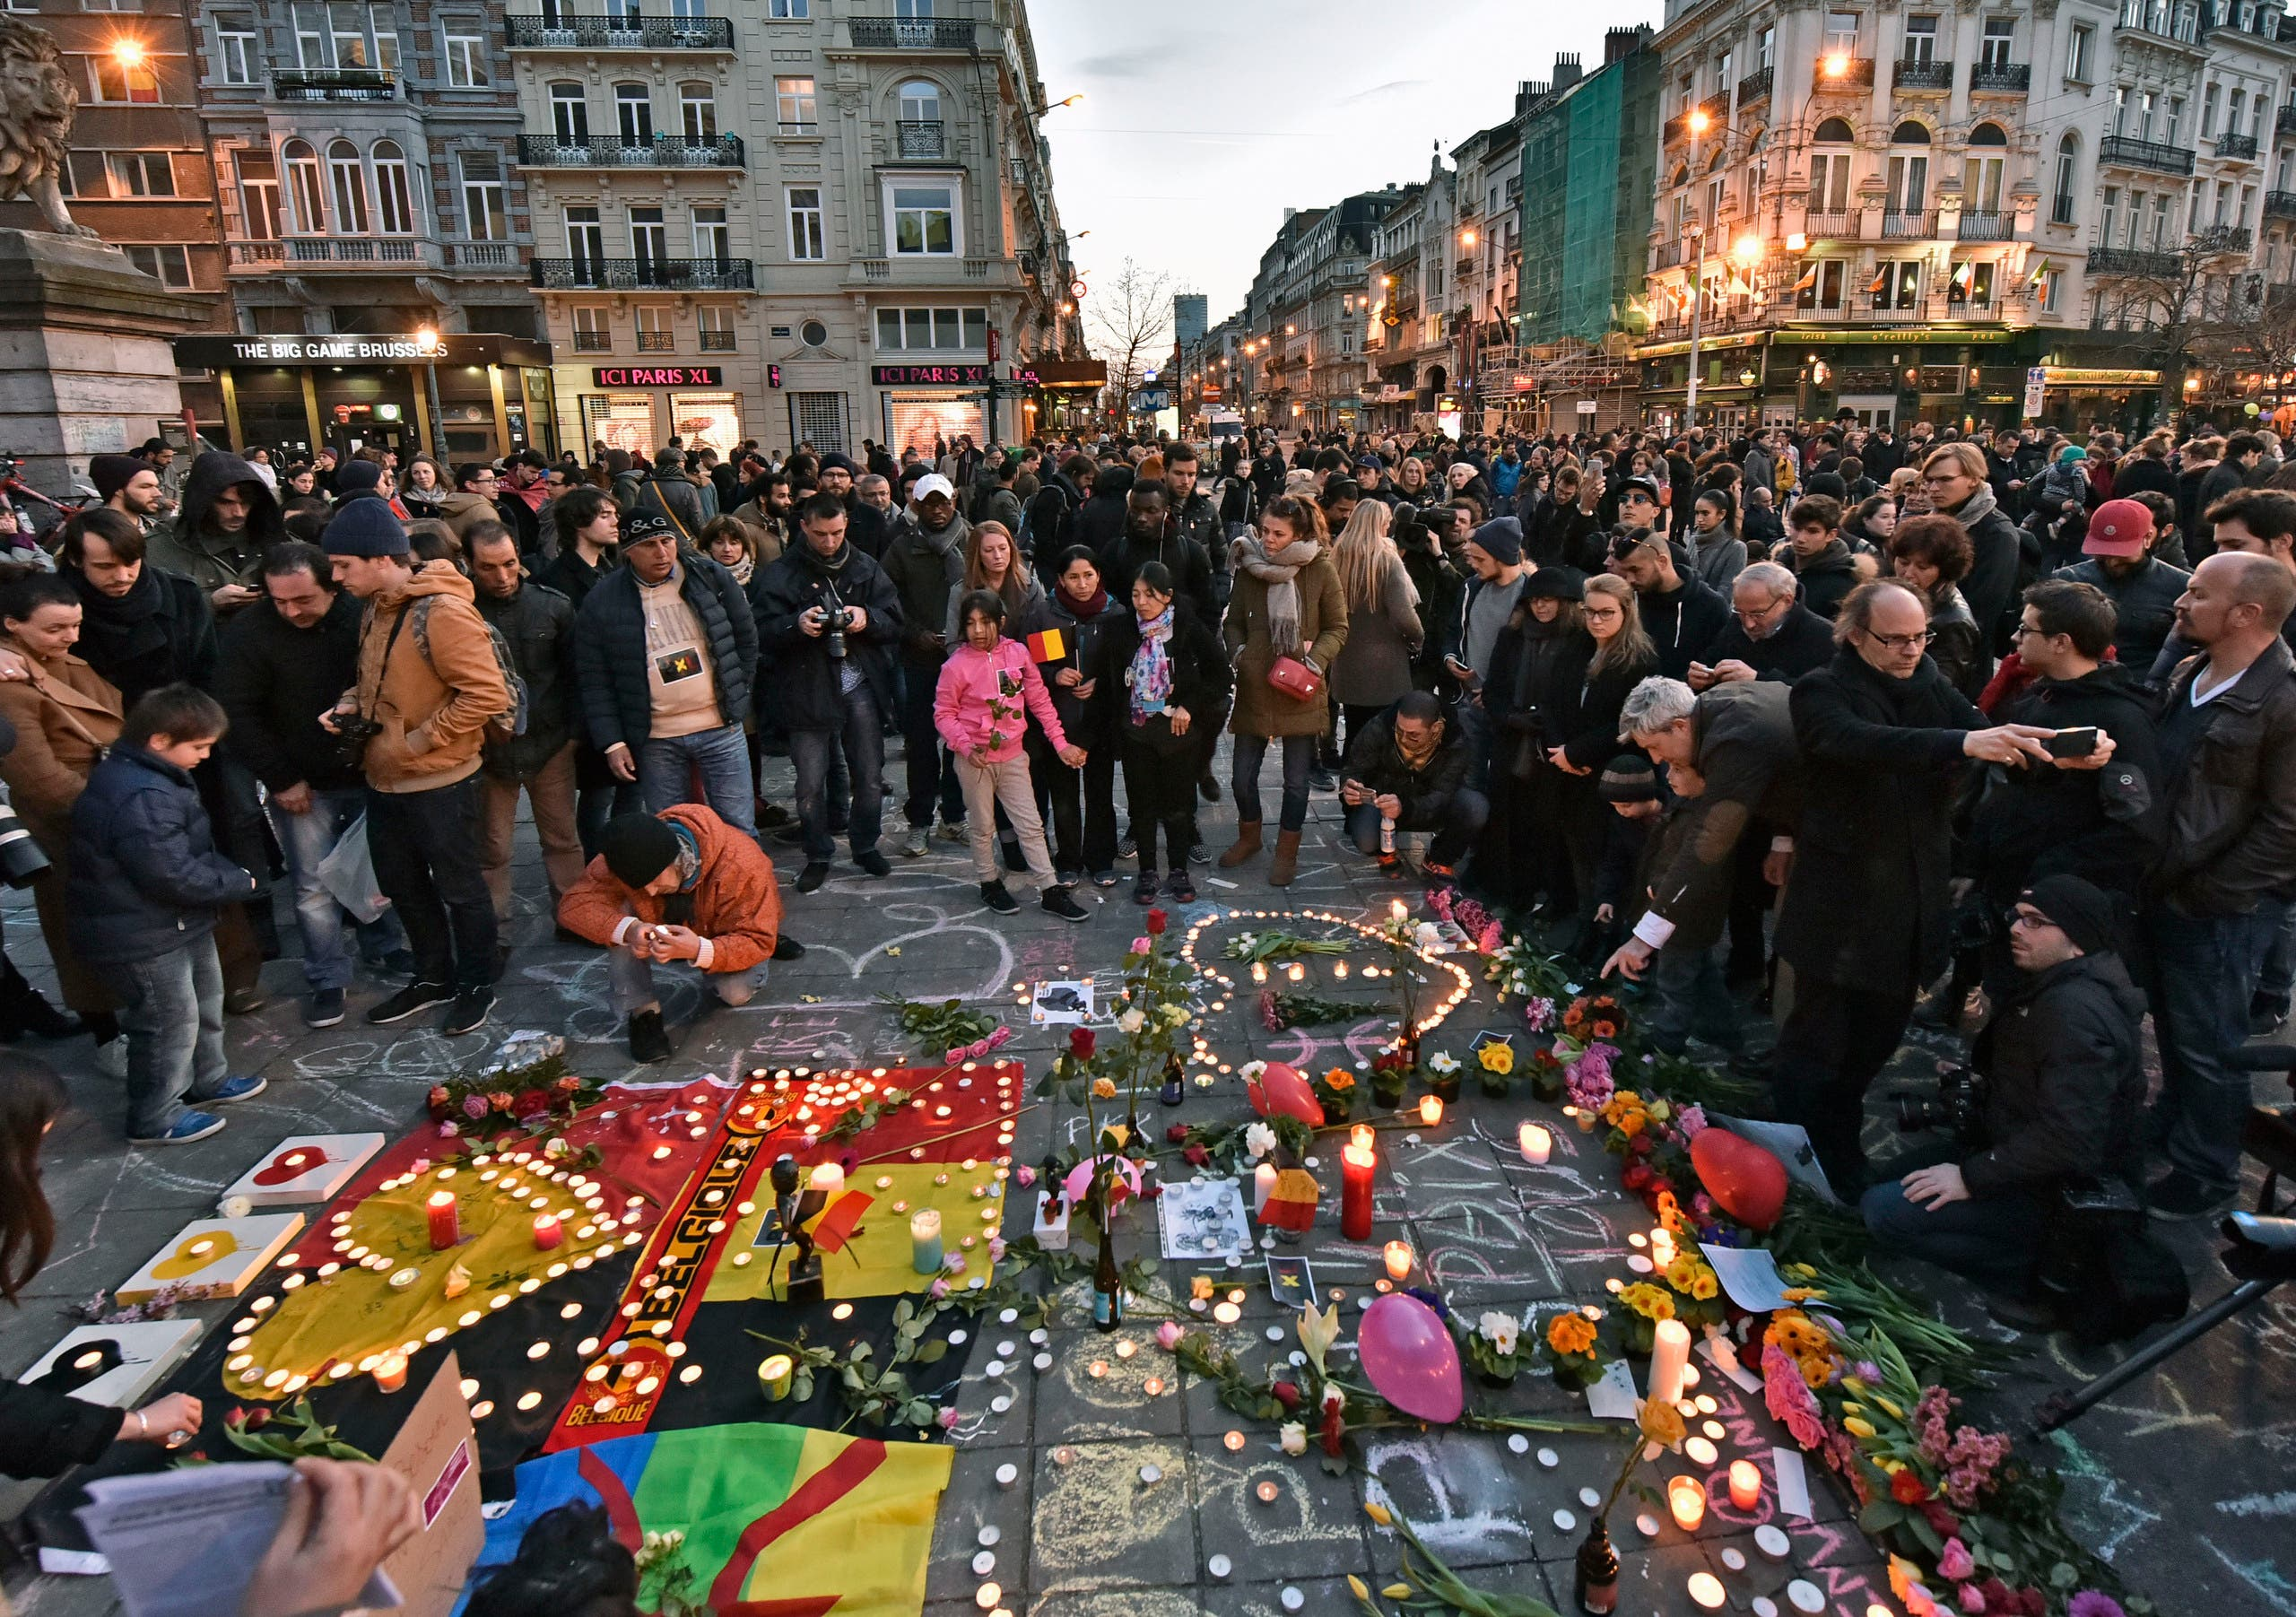 People bring flowers and candles to mourn at the Place de la Bourse in the center of Brussels, Tuesday, March 22, 2016. (AP)